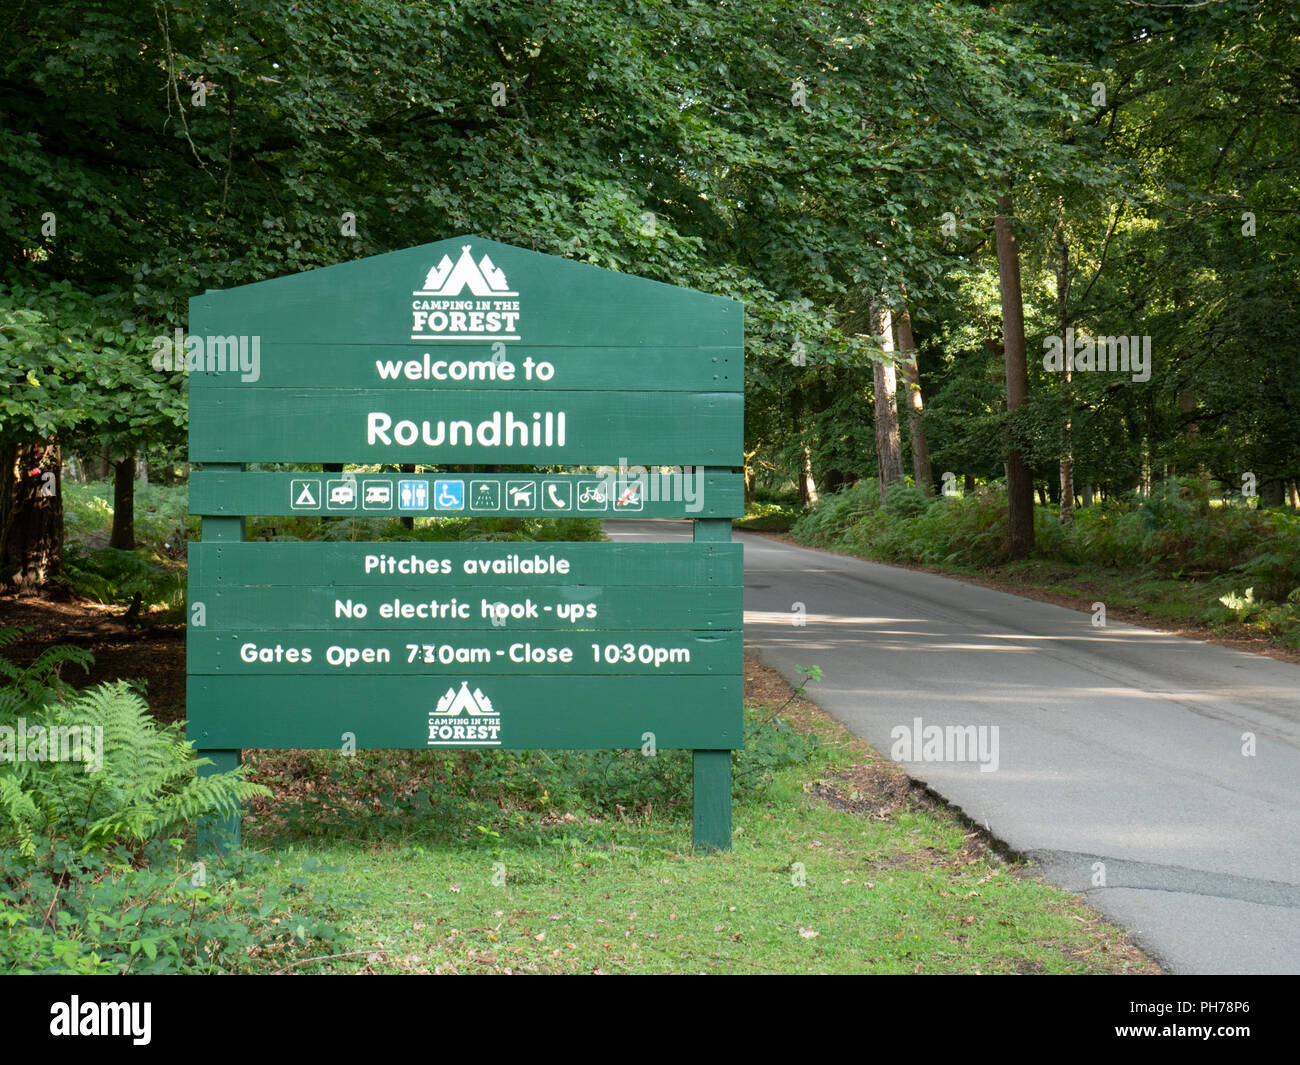 The Entrance To The Roundhill Camping And Caravan Site Near Brokenhurst In The New Forest Hampshire Uk Part Of The Camping In The Forest Chain Of Camp